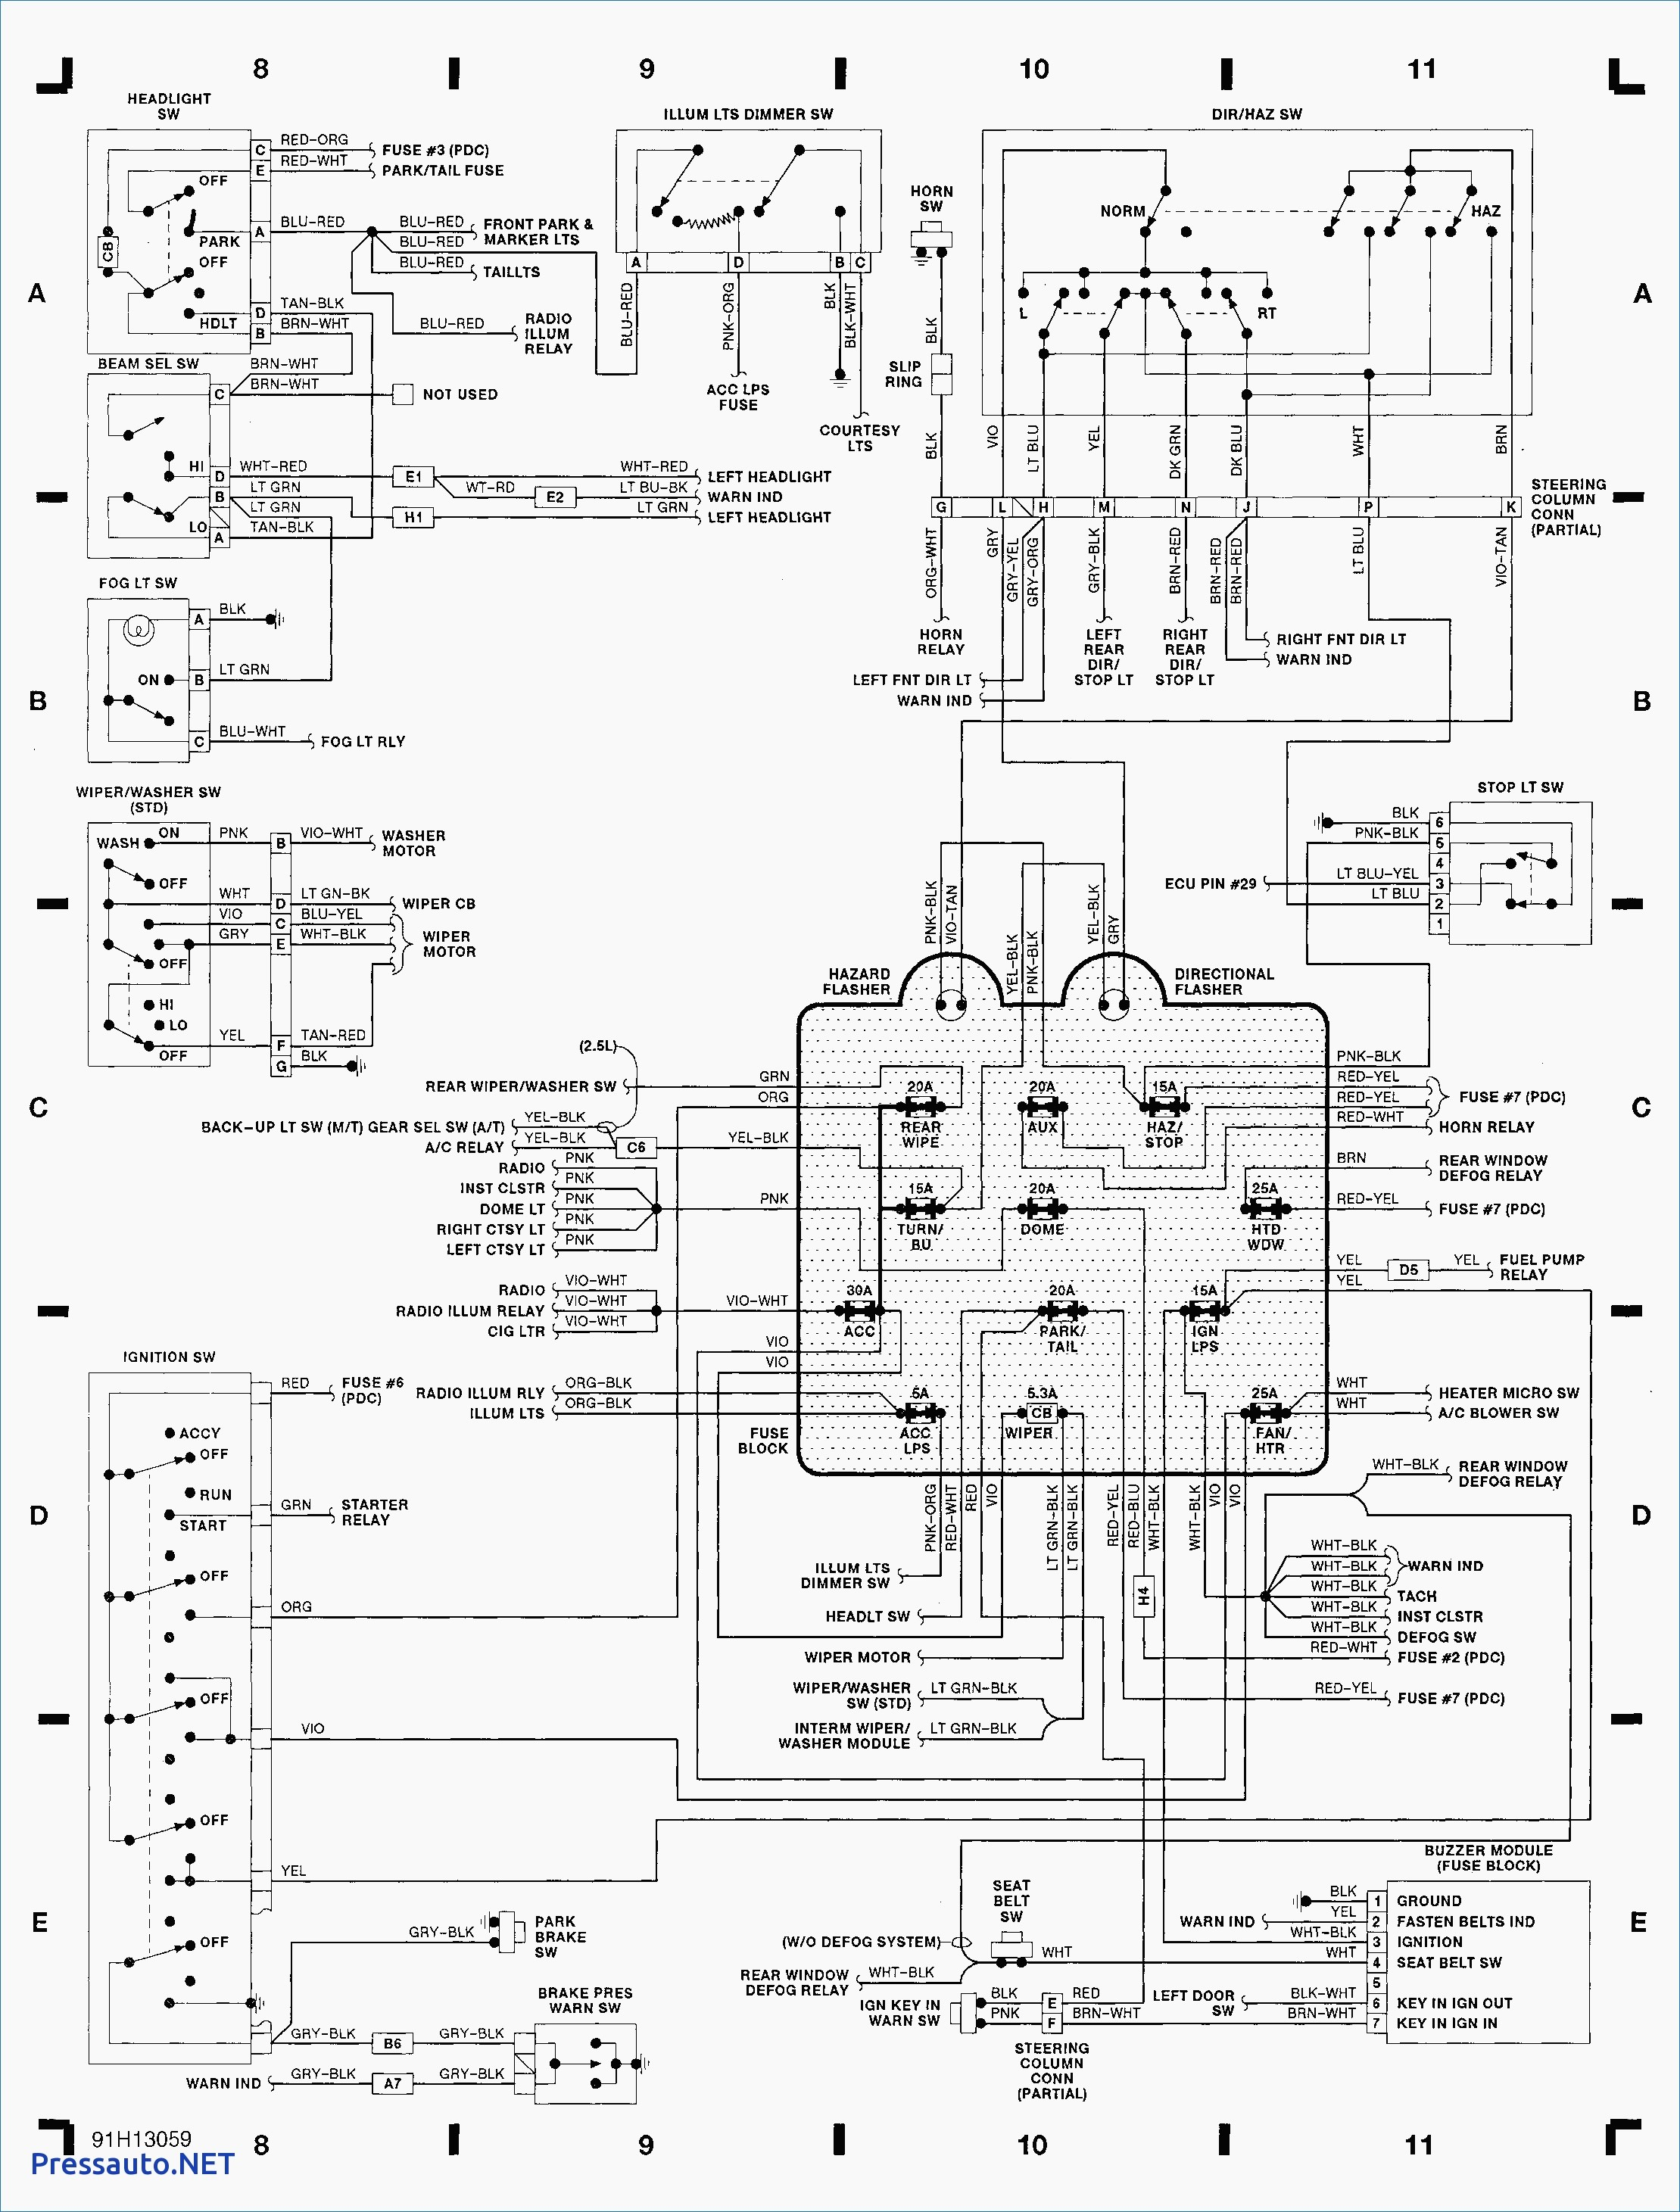 Honda Ridgeline Tail Light Wiring Diagram Schematic